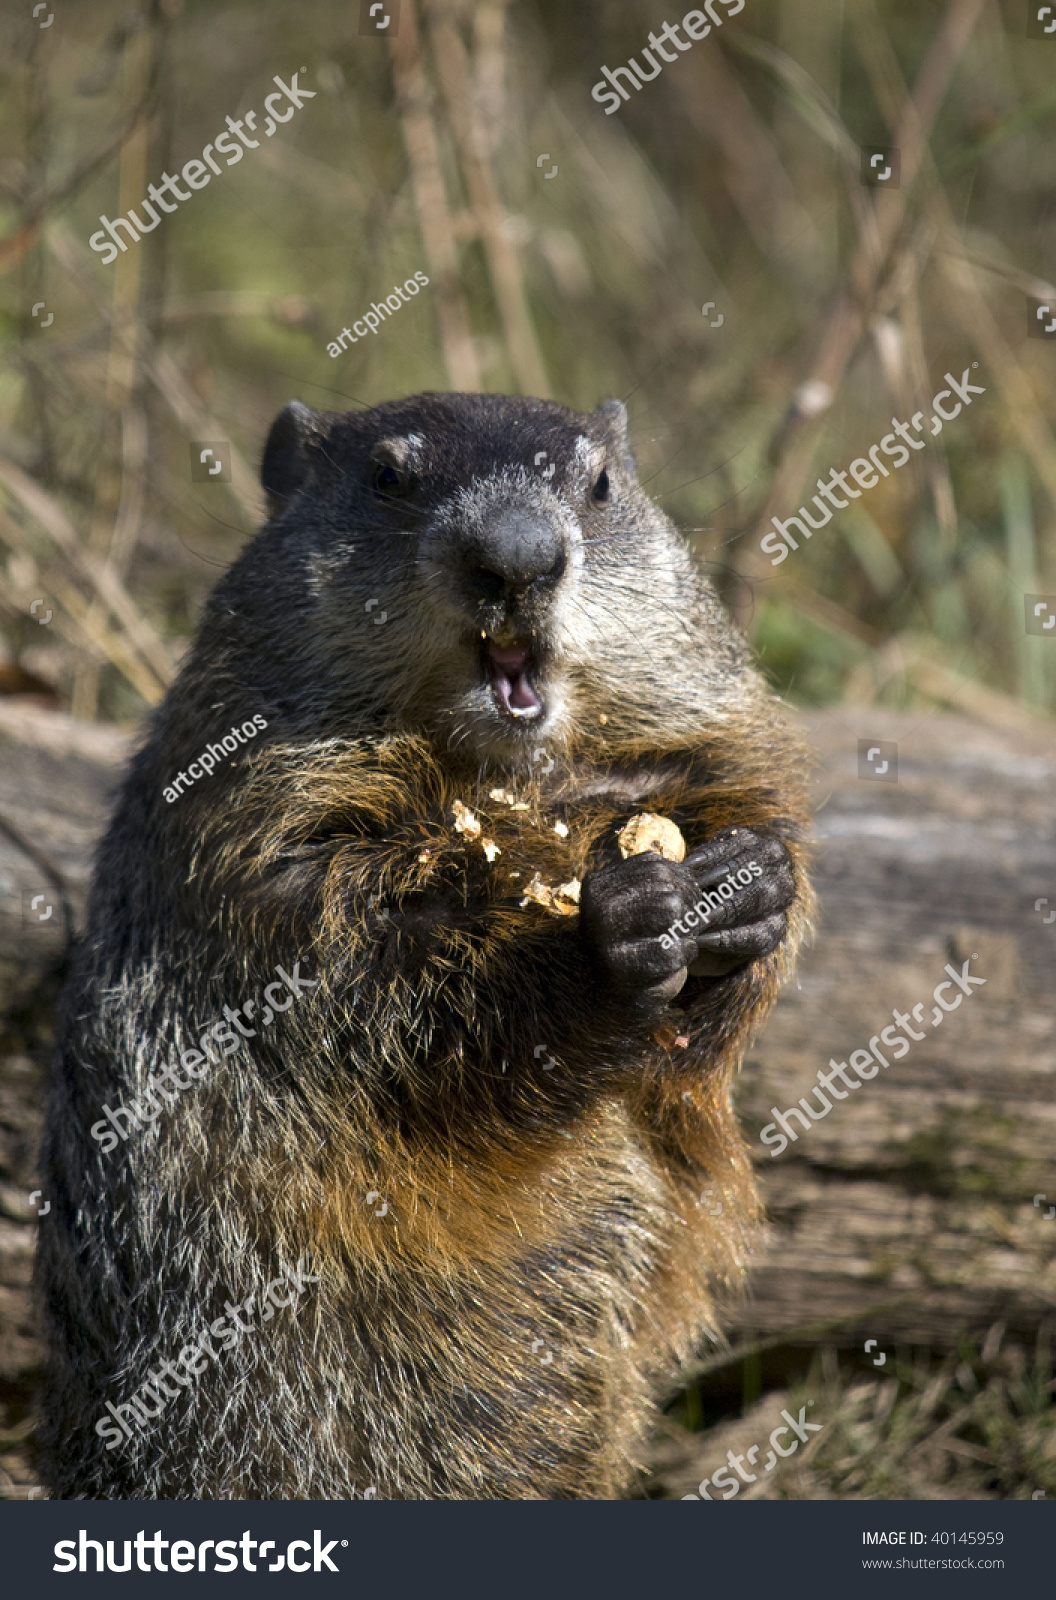 Close Up Of A Woodchuck Eating A Peanut. The Groundhog (Marmota Monax), Also Known As A Woodchuck Or Whistle-Pig, Or In Some Areas As A Land ...